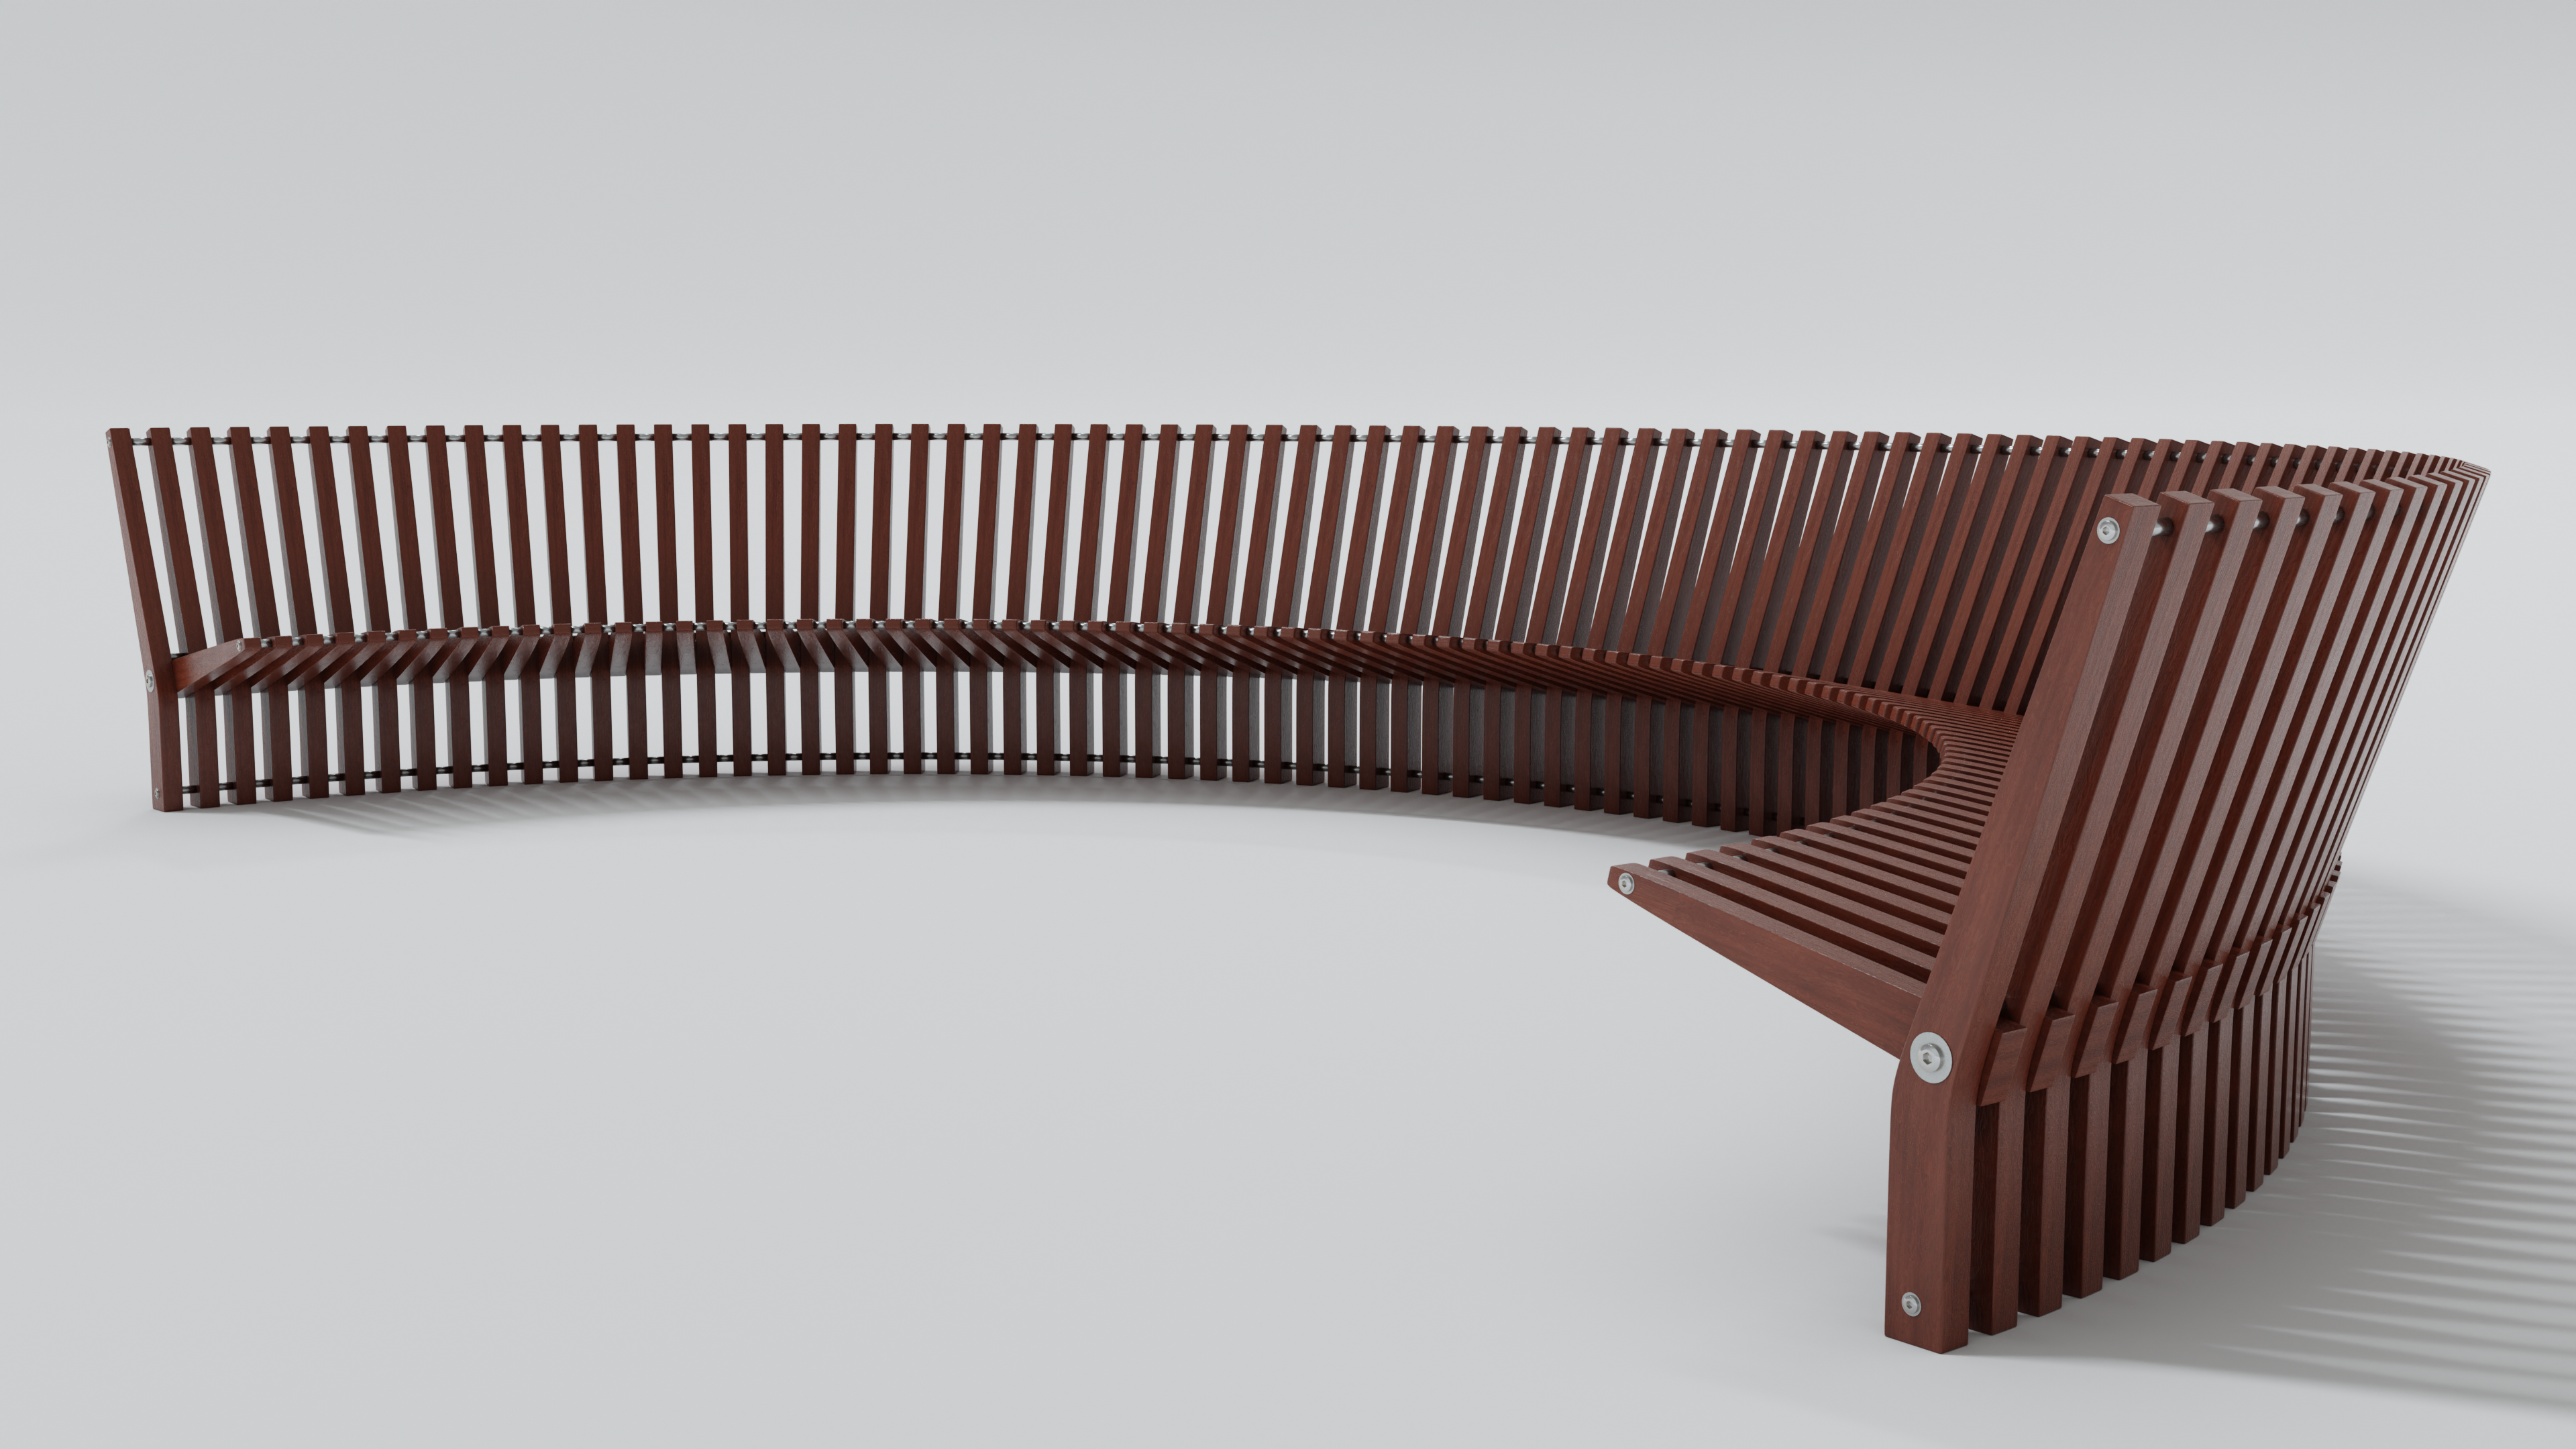 Astral - bench by Per Borre preview image 1